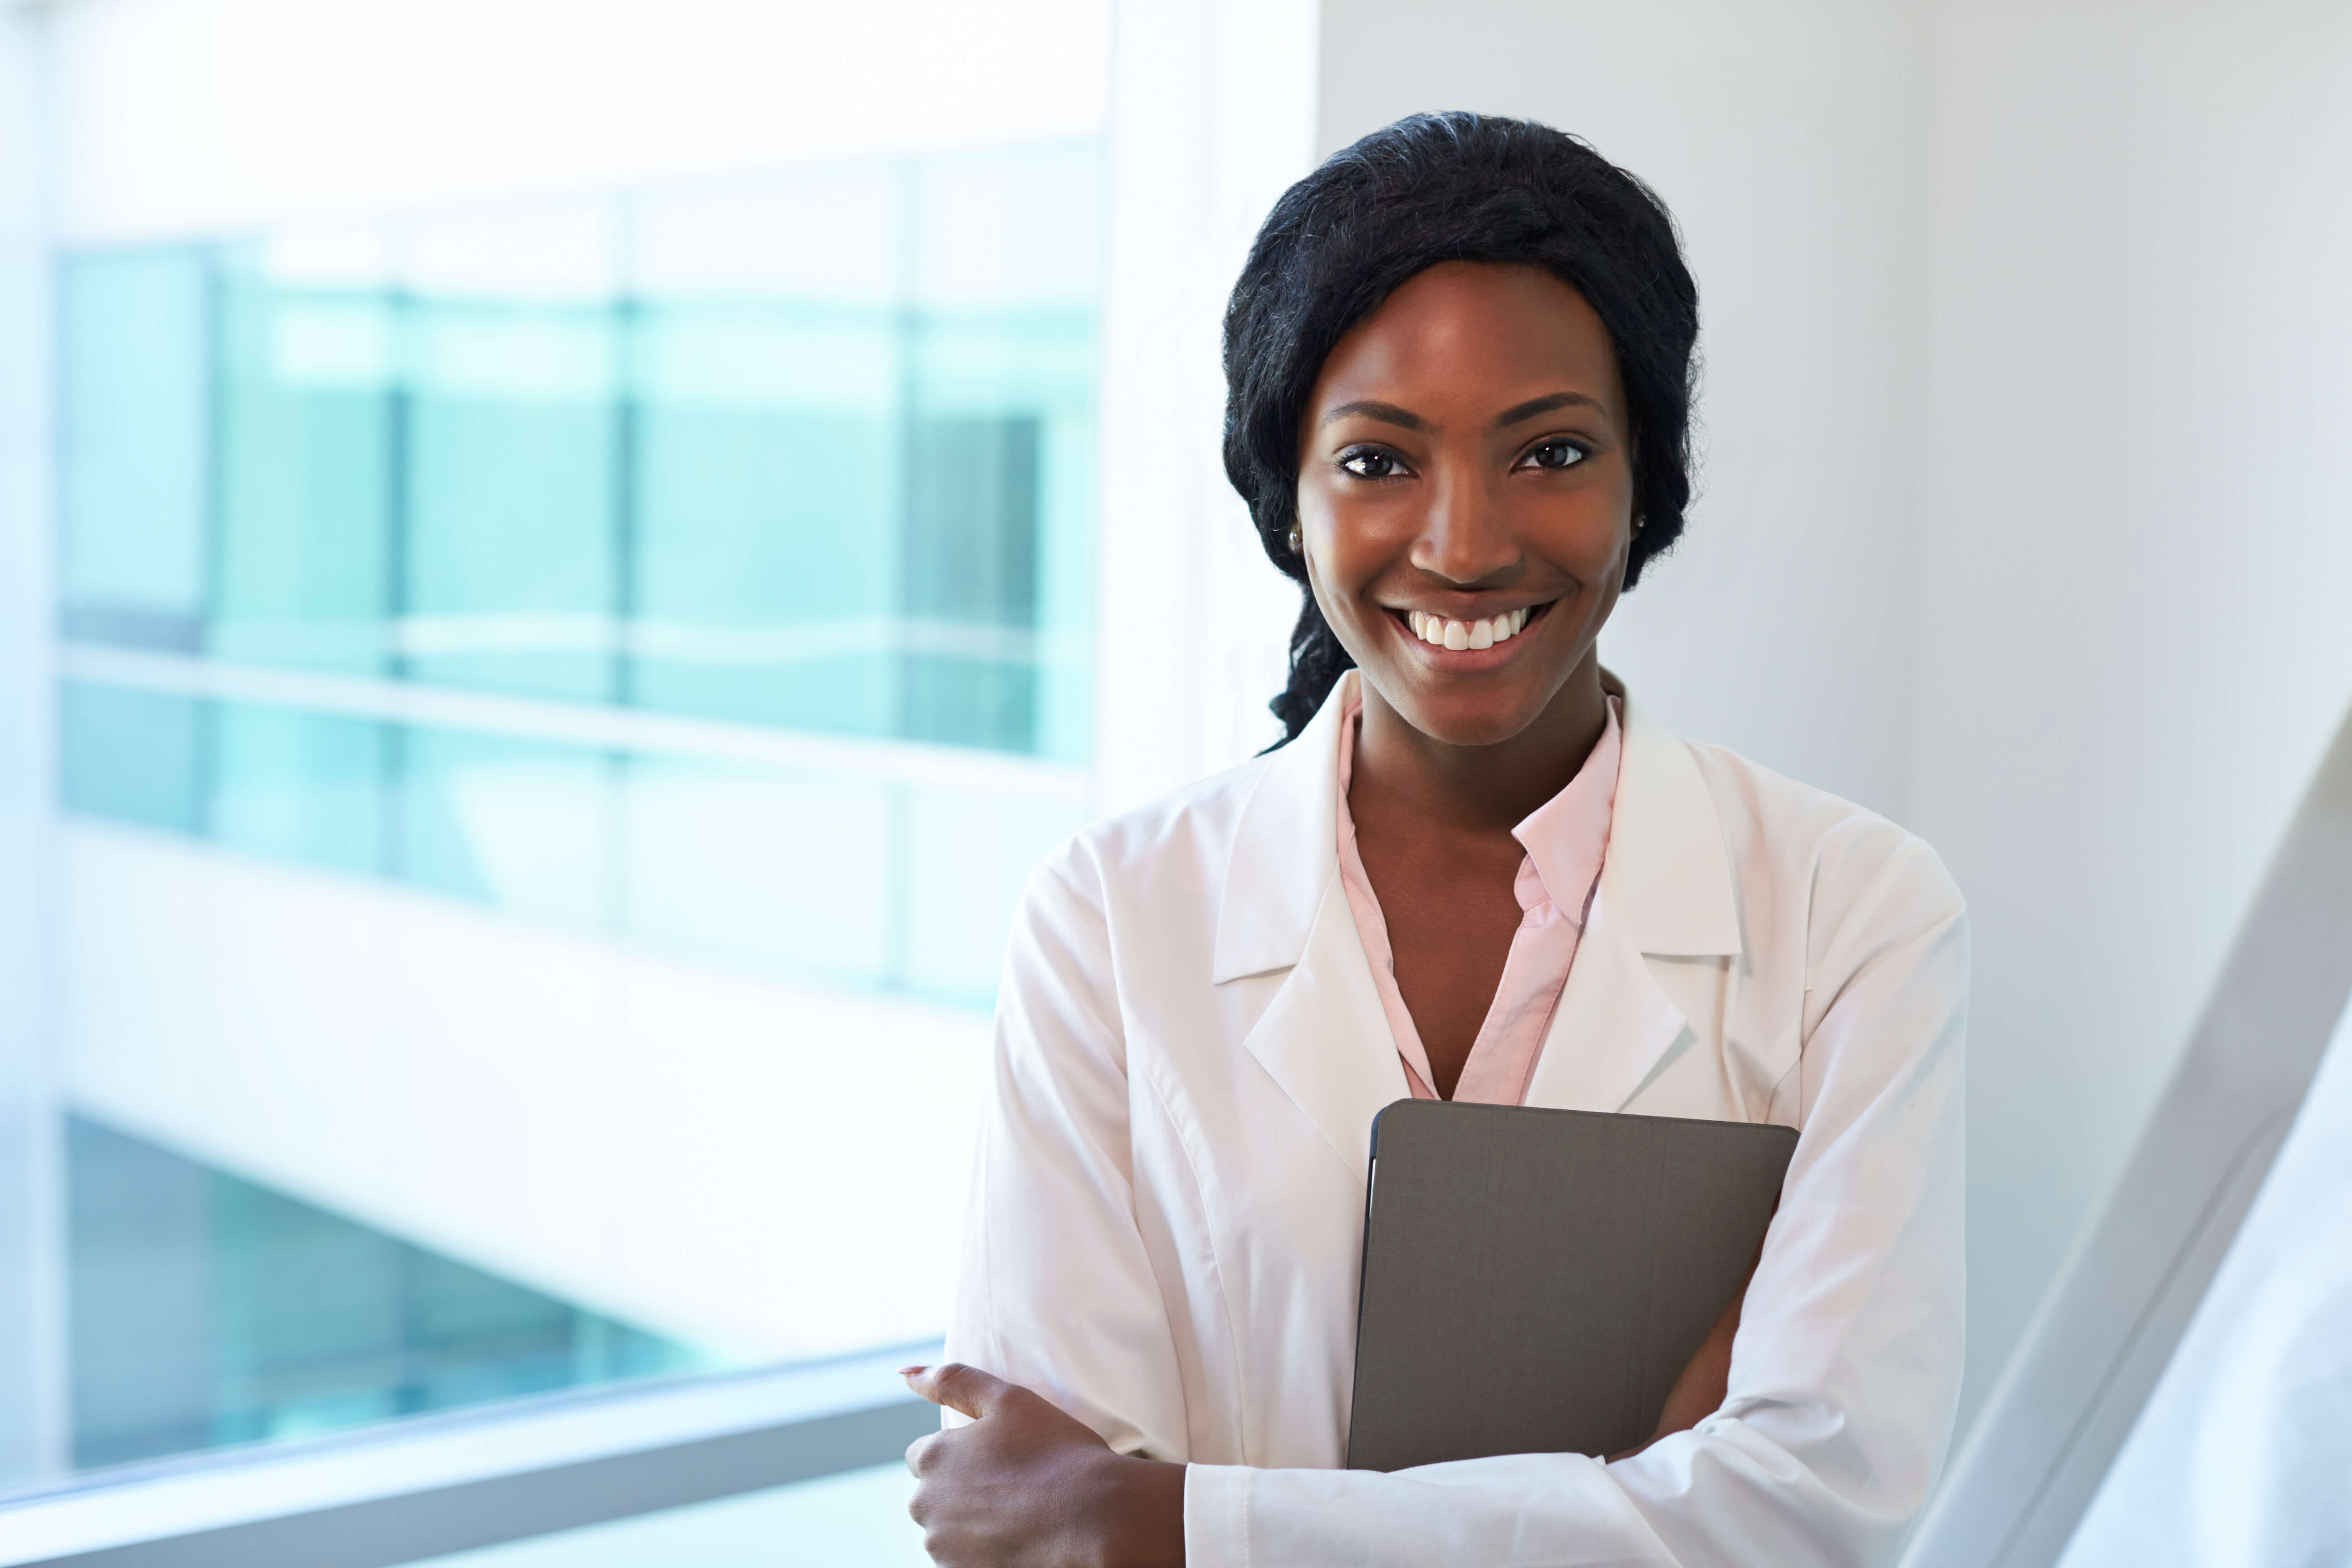 african american nurse smile telephonic triage advice hospital healthcare